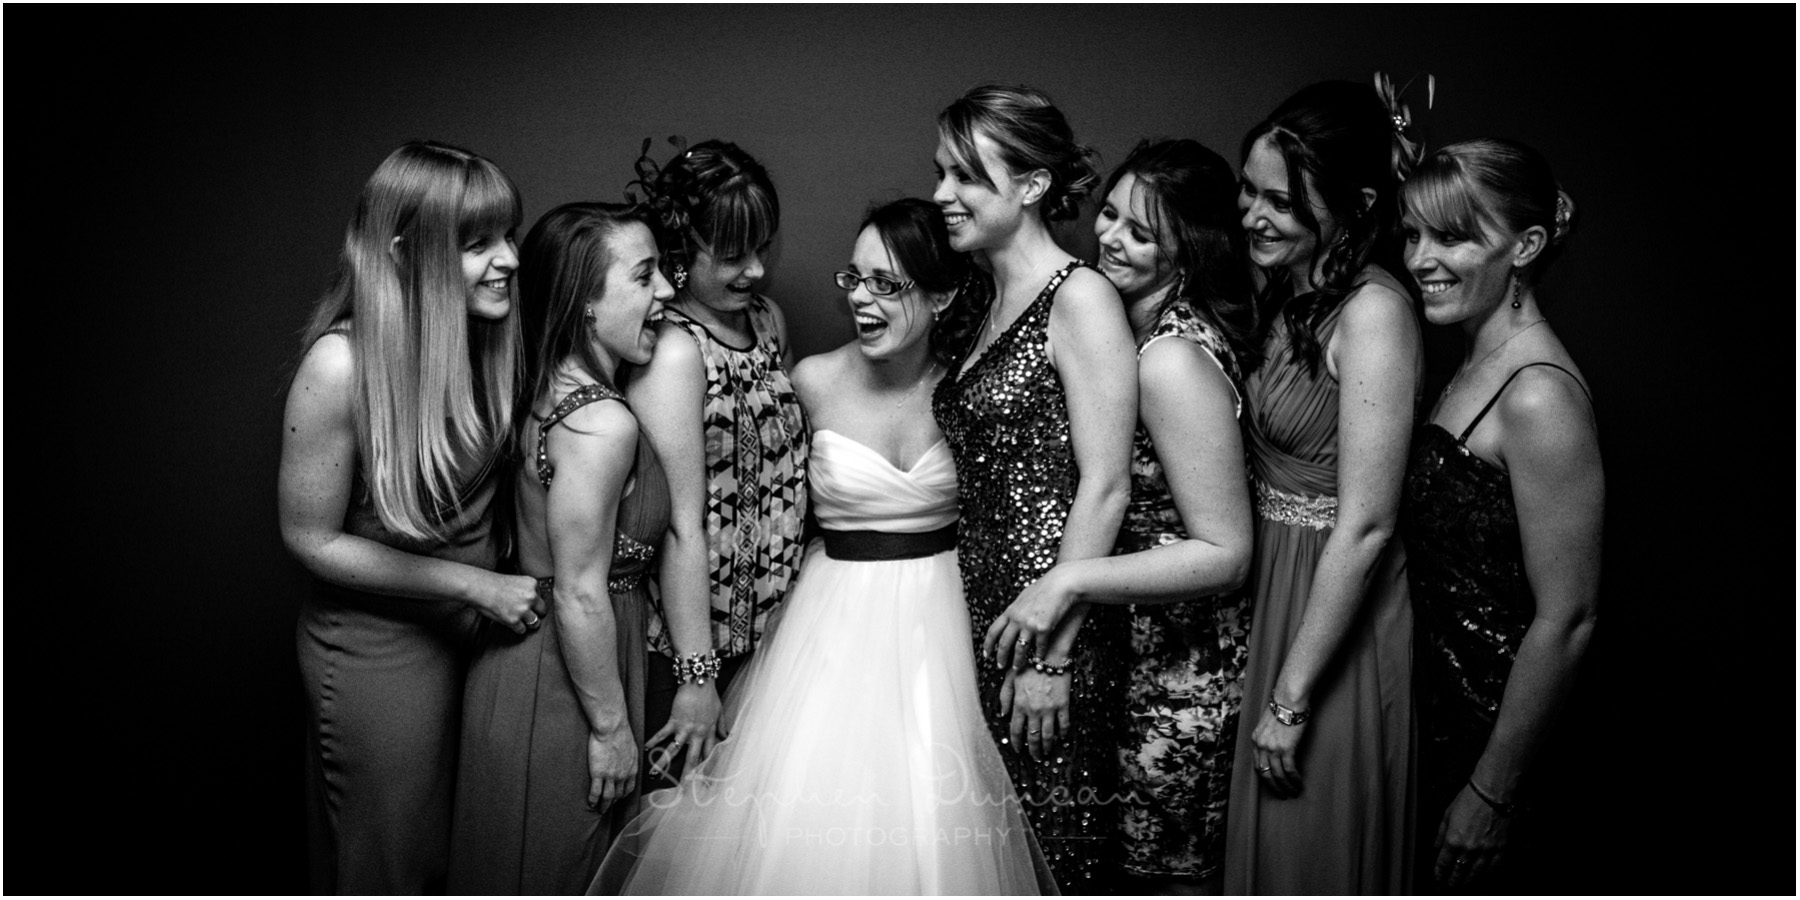 The Aviator wedding photography bride with friends